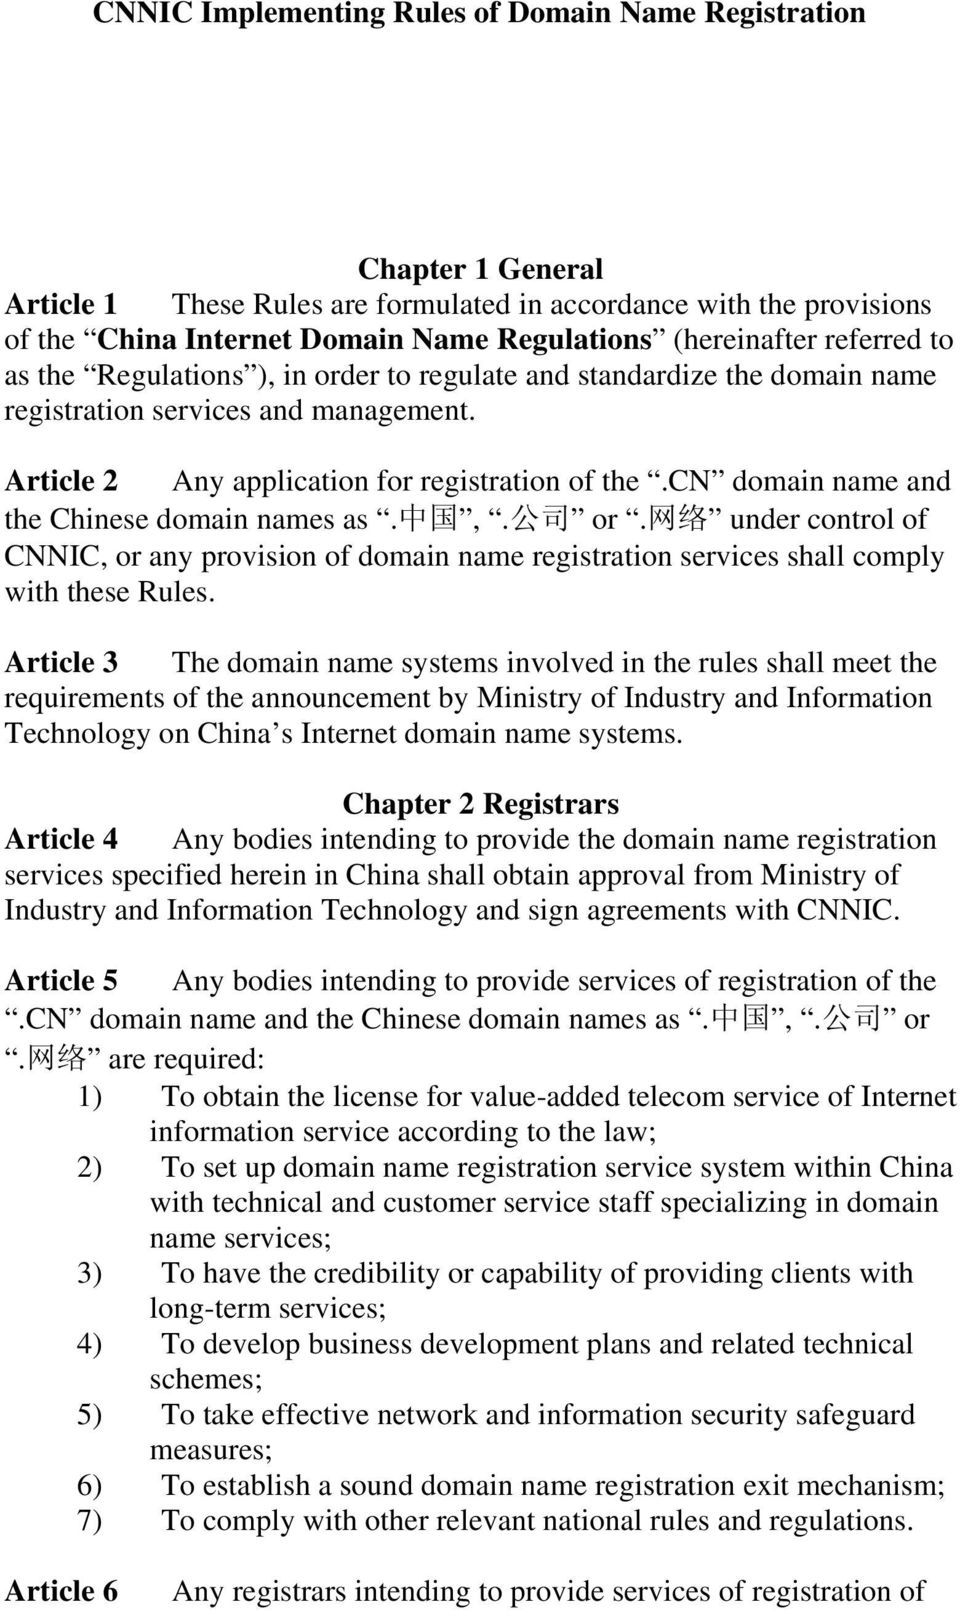 cn domain name and the Chinese domain names as. 中 国,. 公 司 or. 网 络 under control of CNNIC, or any provision of domain name registration services shall comply with these Rules.